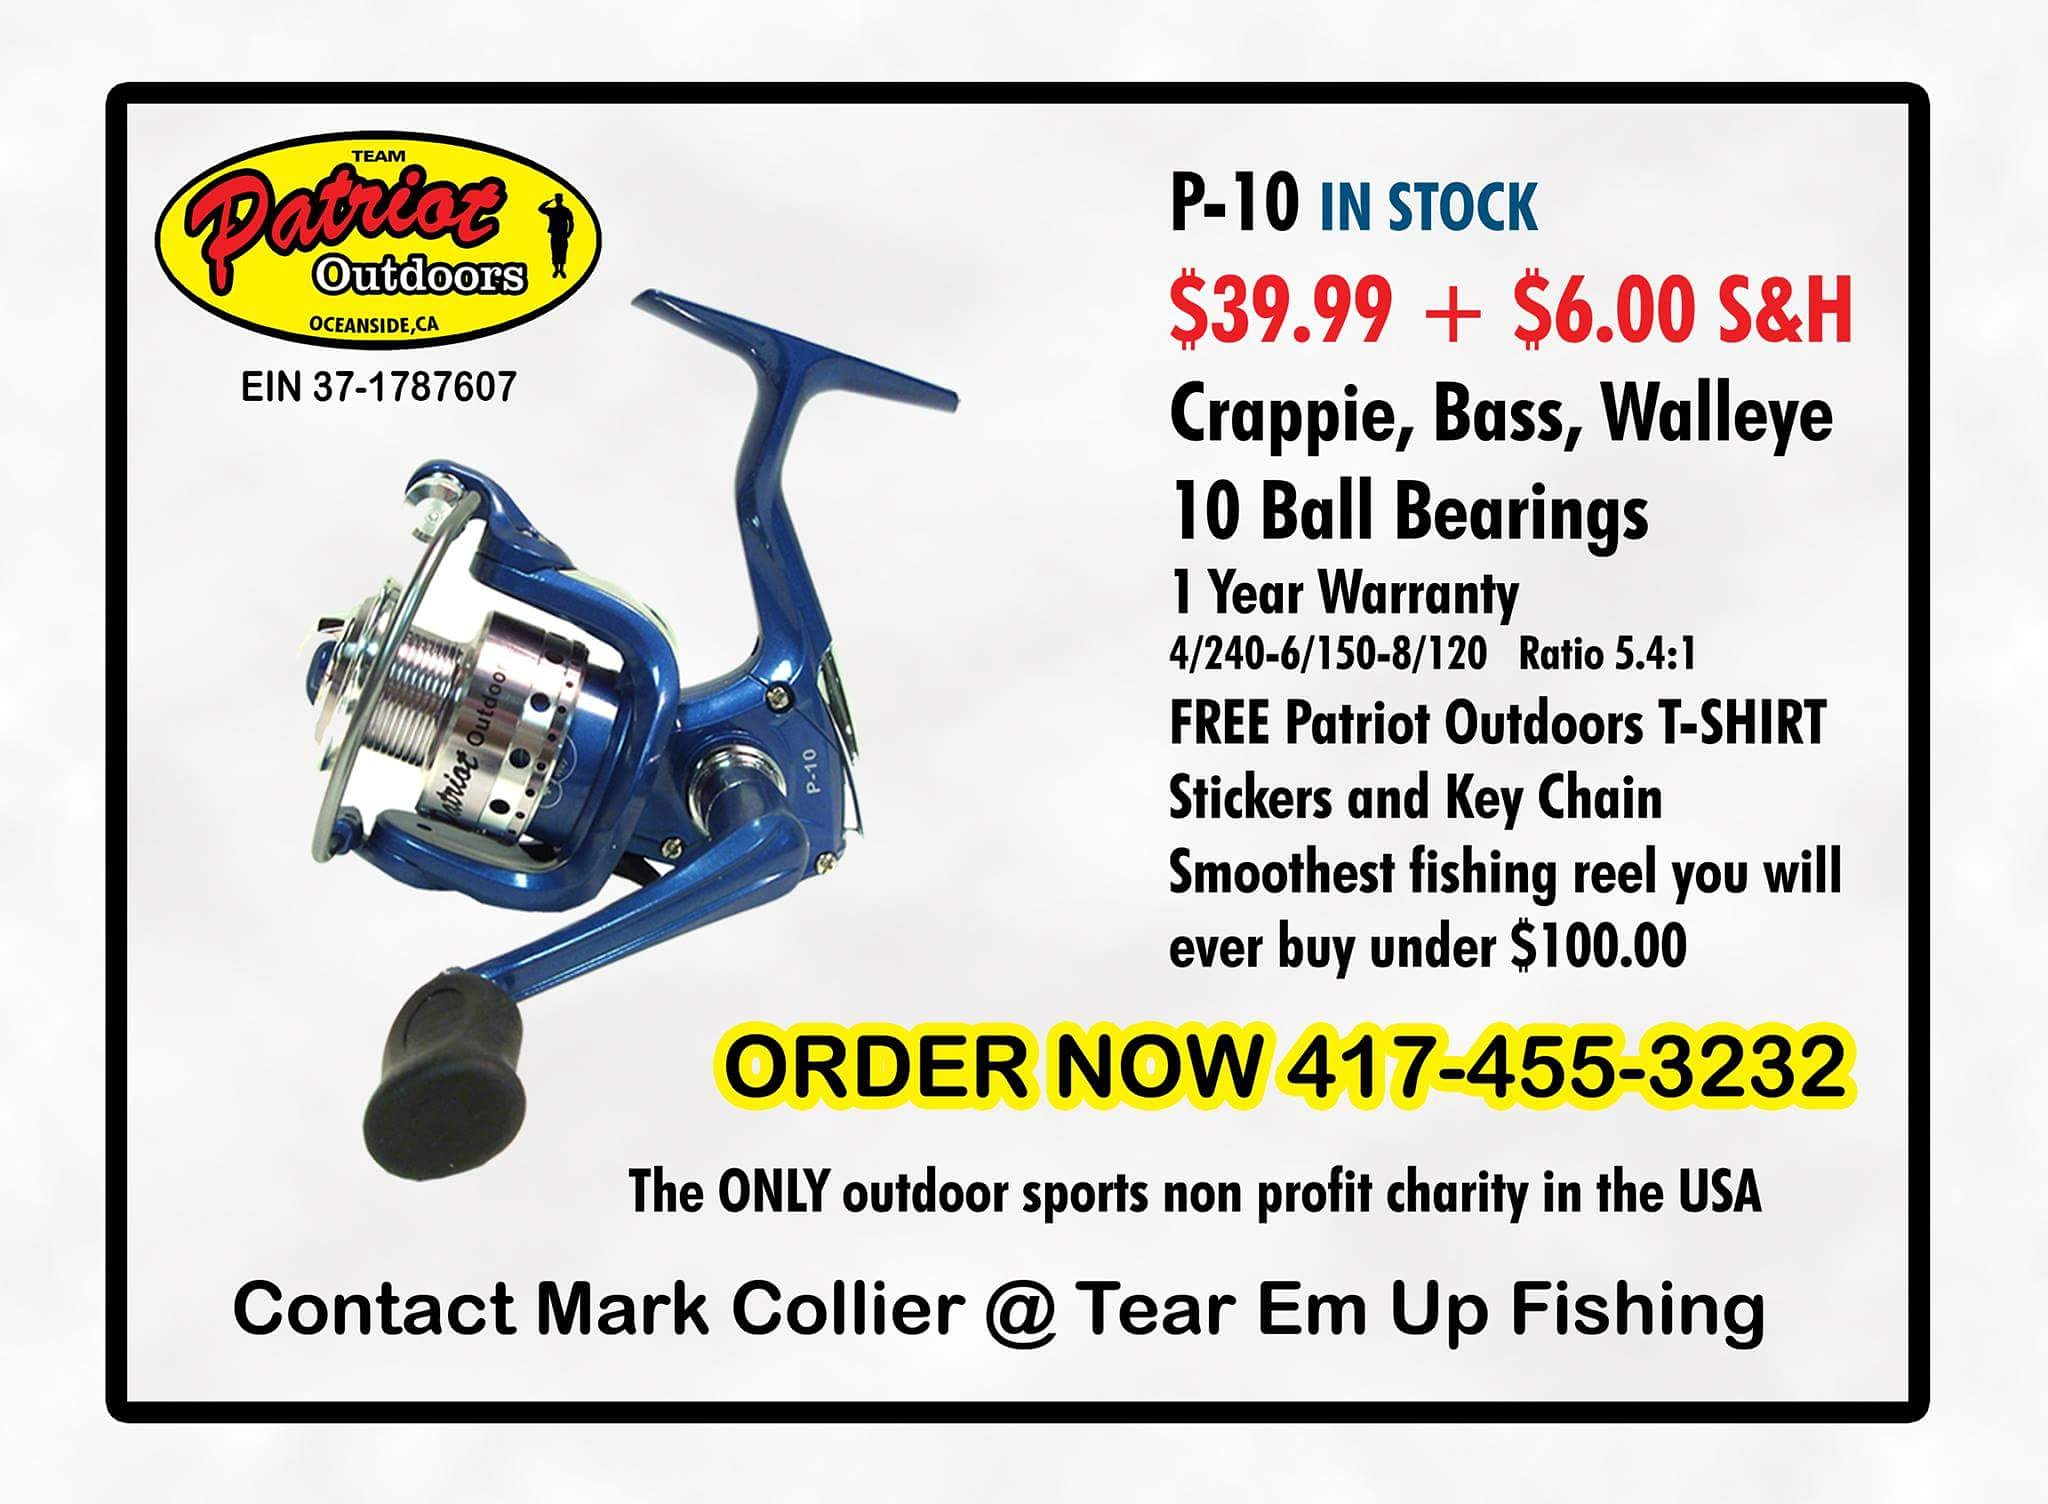 Patriot Outdoors P-10 Spinning Reel